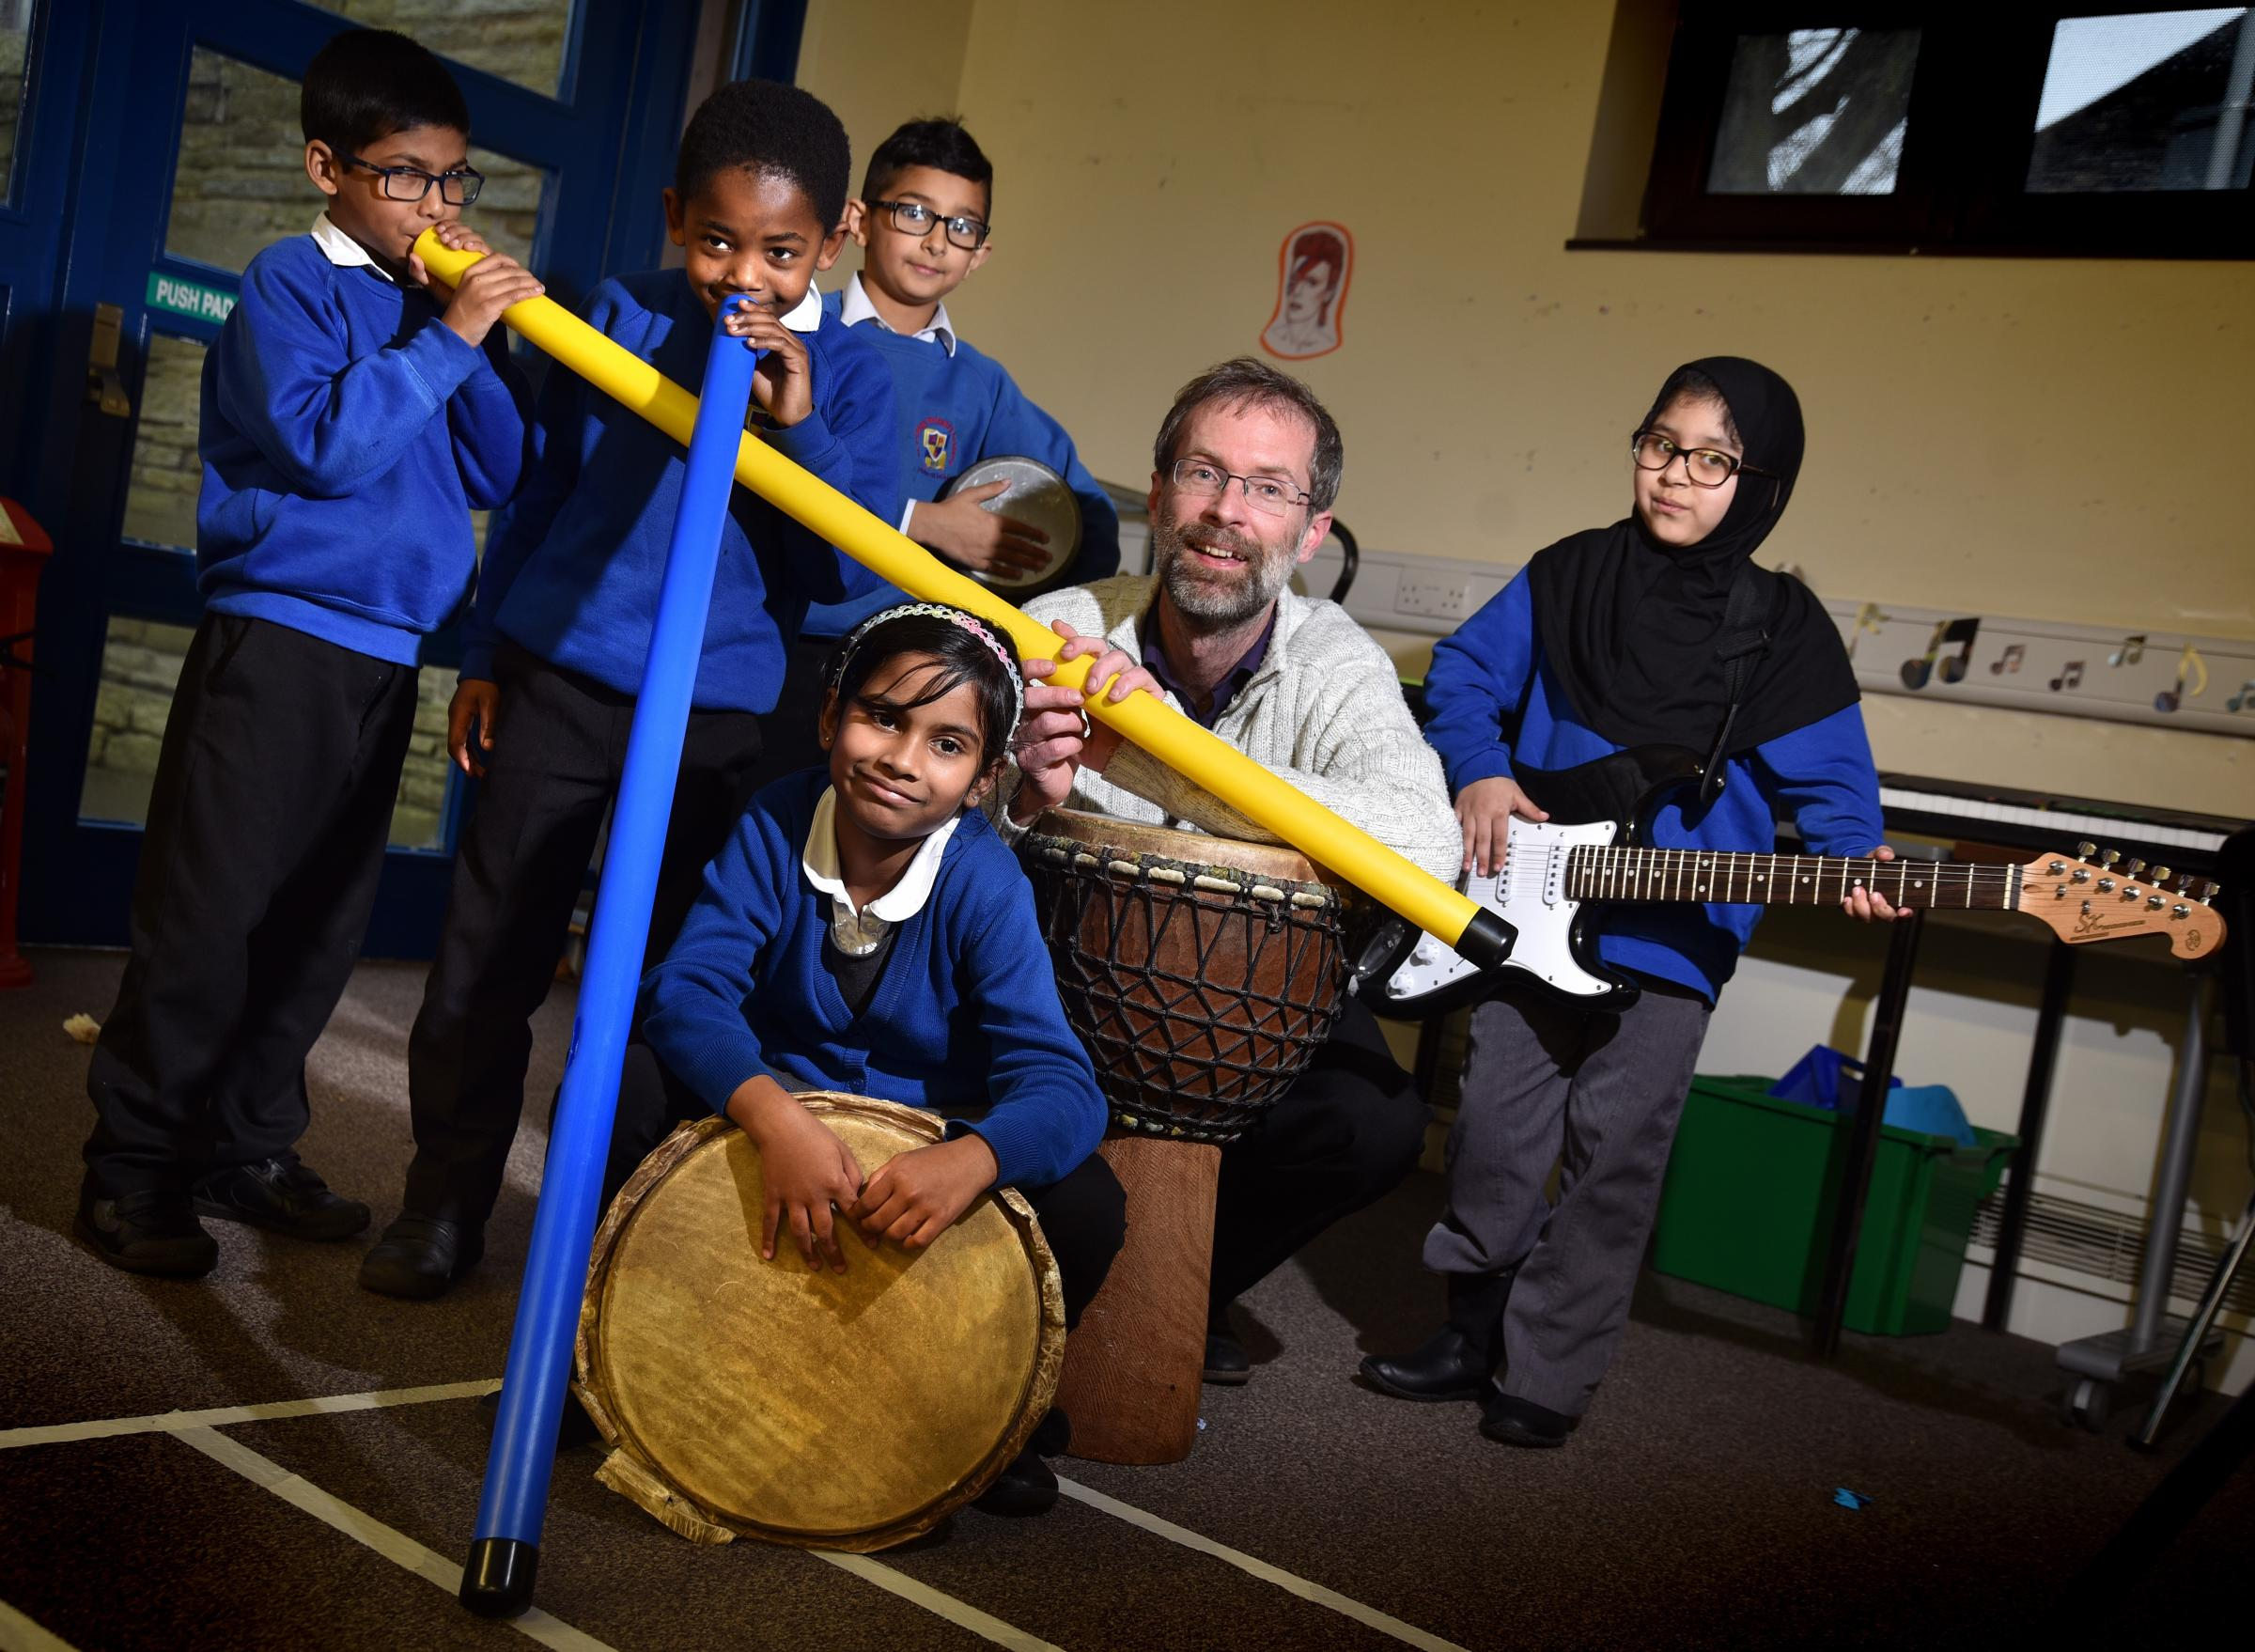 Music coordinator Jimmy Rotheram has been shortlisted in the final 50 for the world teacher of the year award for his work promoting and developing music at the school.